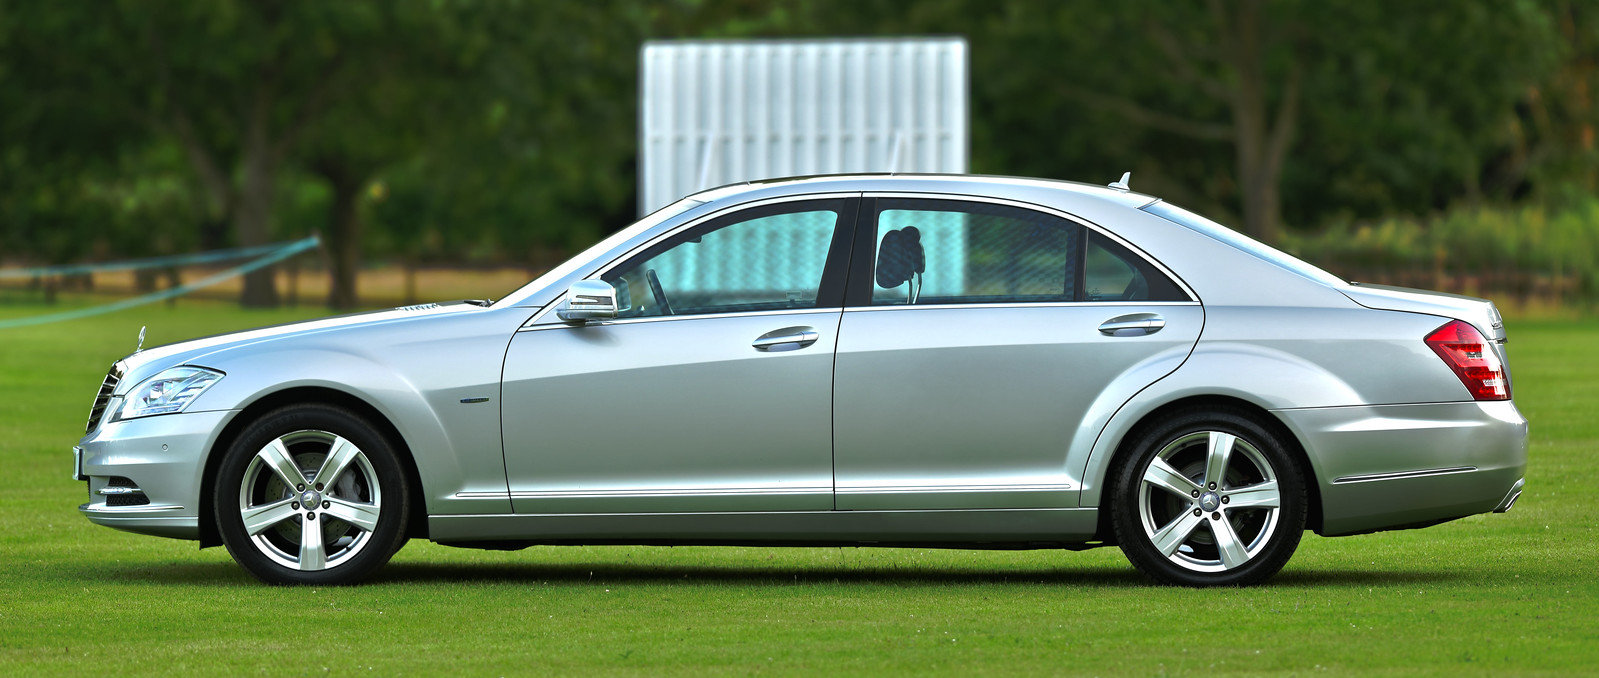 2011 Mercedes Benz S Class S350 BLUETEC LWB For Sale (picture 2 of 6)